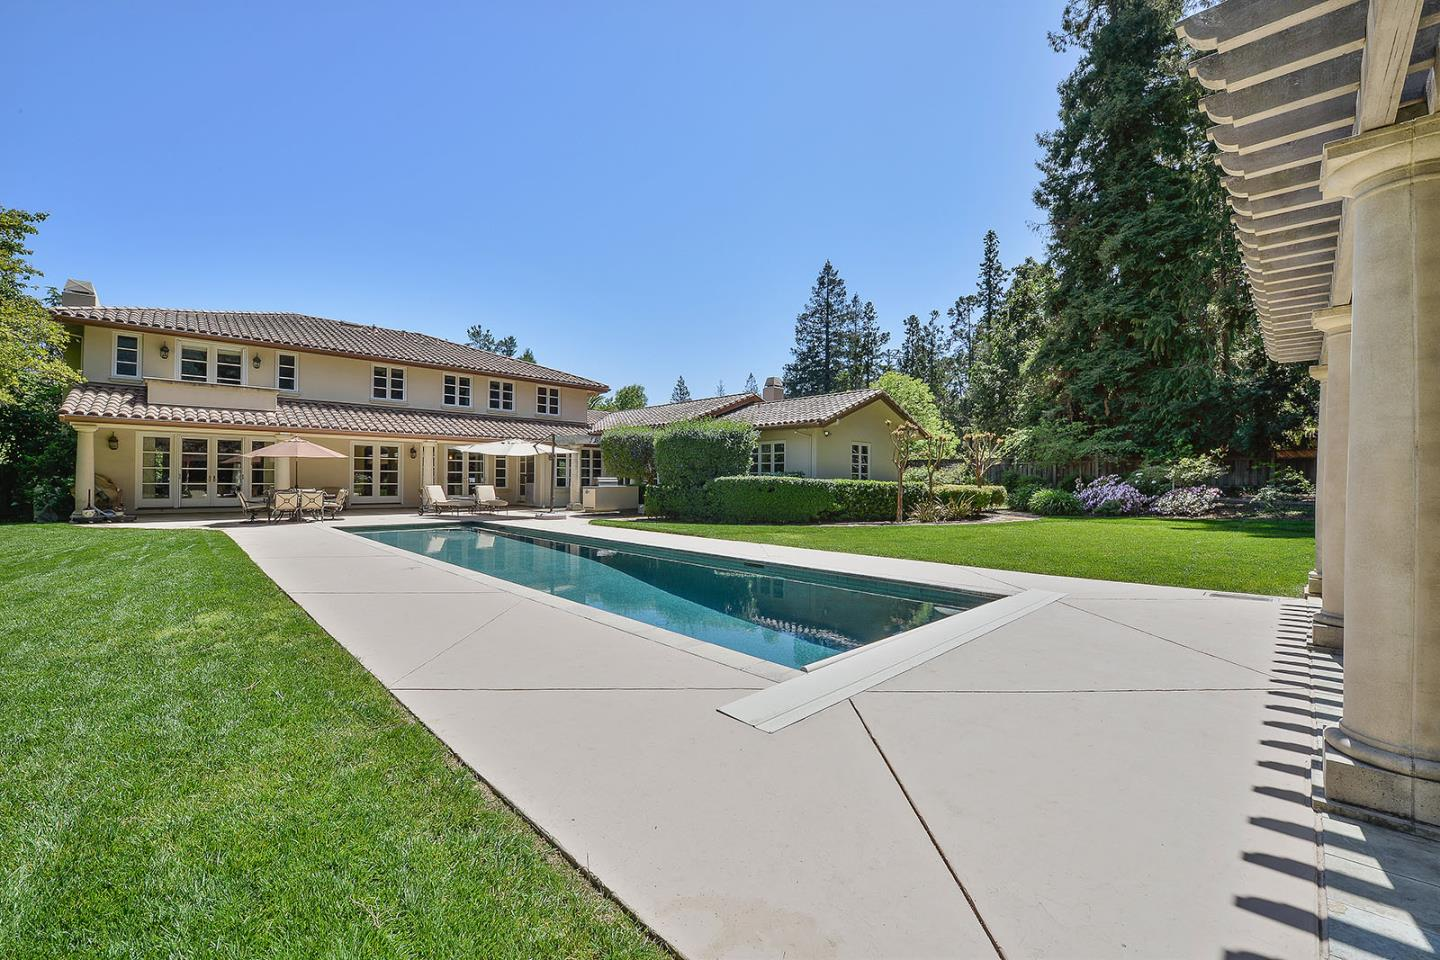 Additional photo for property listing at 15427 Hume Drive  Saratoga, California 95070 United States